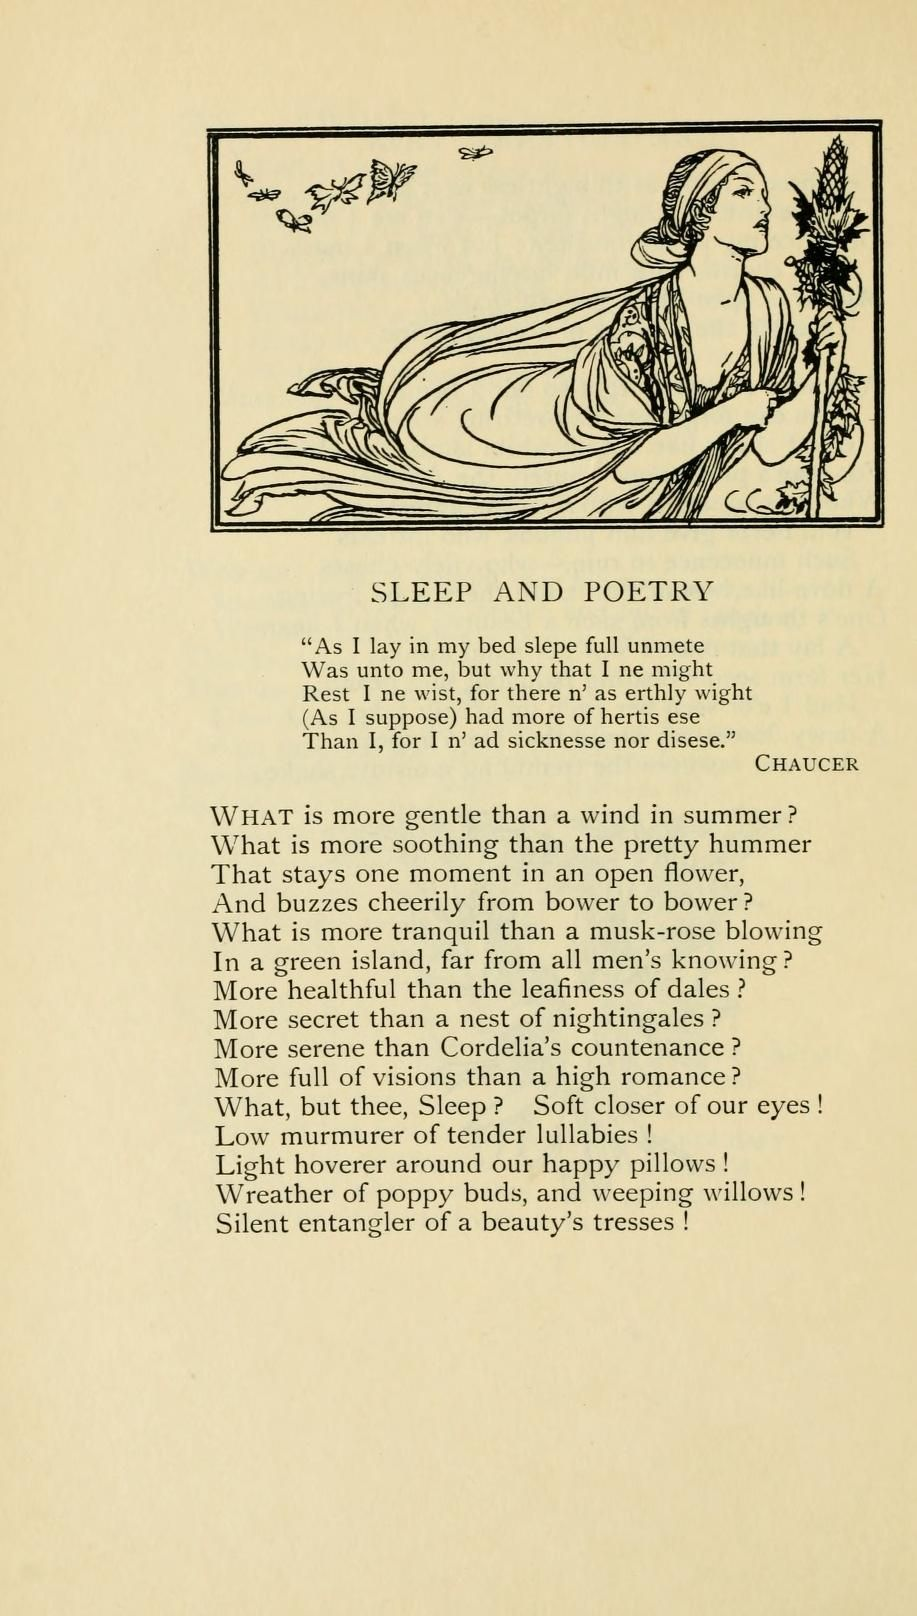 In The Arm Of Sleep Photo Chaucer Quote Drake About Love Geoffrey Quotes Poem Ode To Autumn By John Keats Appreciation Keat Critical Analysi Pdf